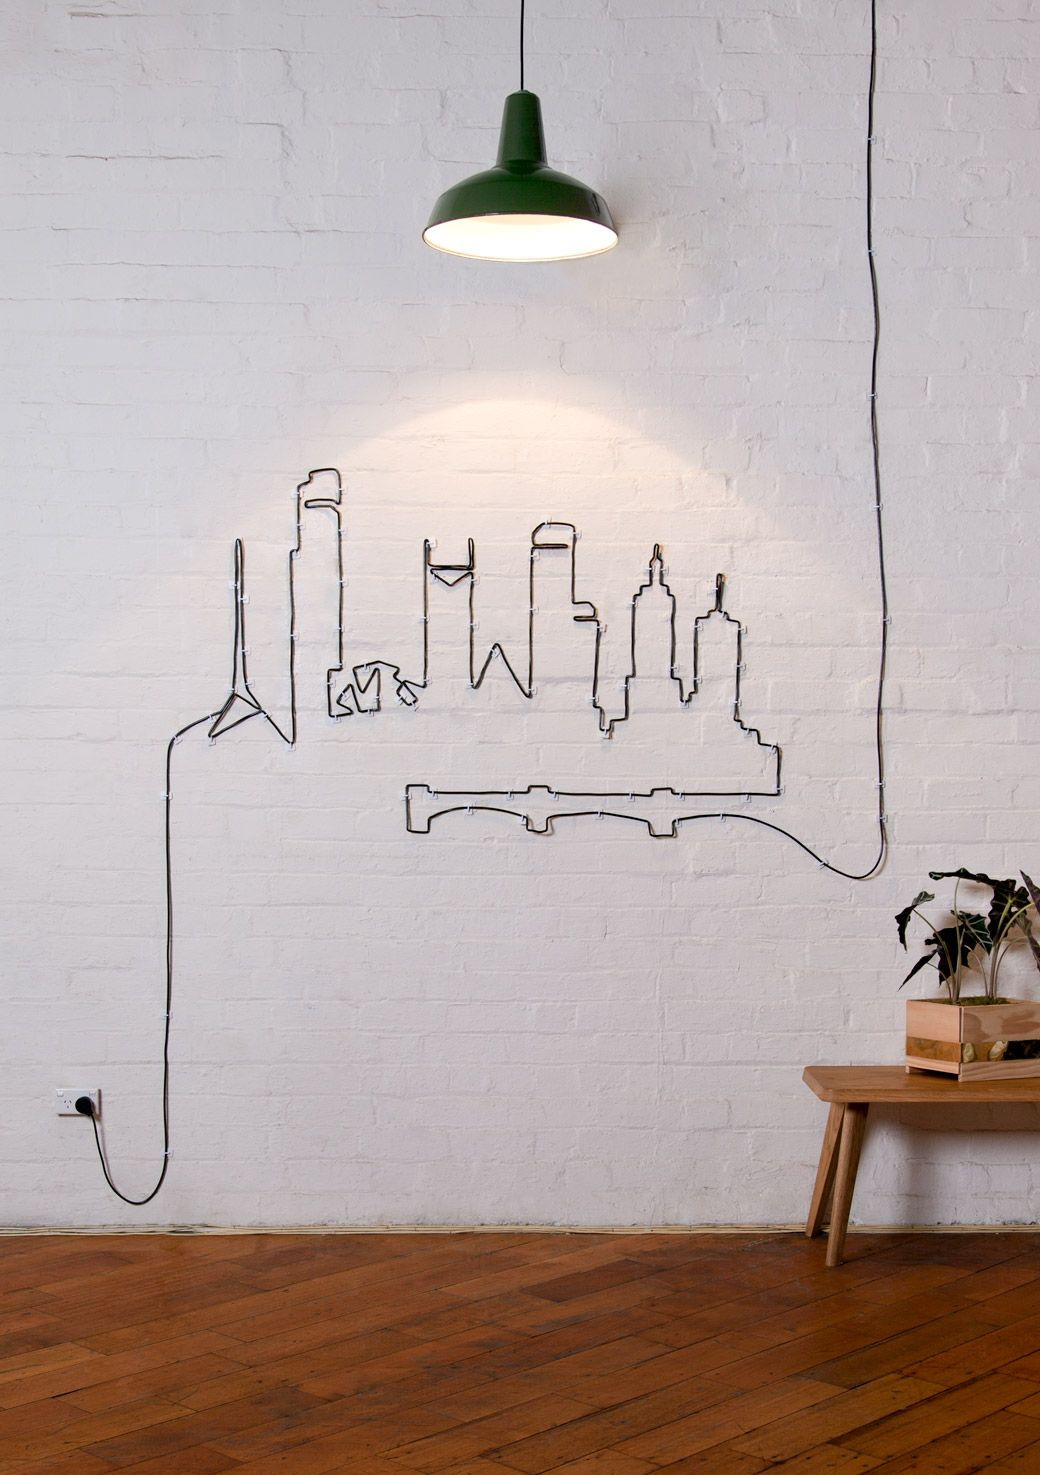 Hide Cable Wires Electrical Cord Cityscapes Cord Electrical Cord And Melbourne